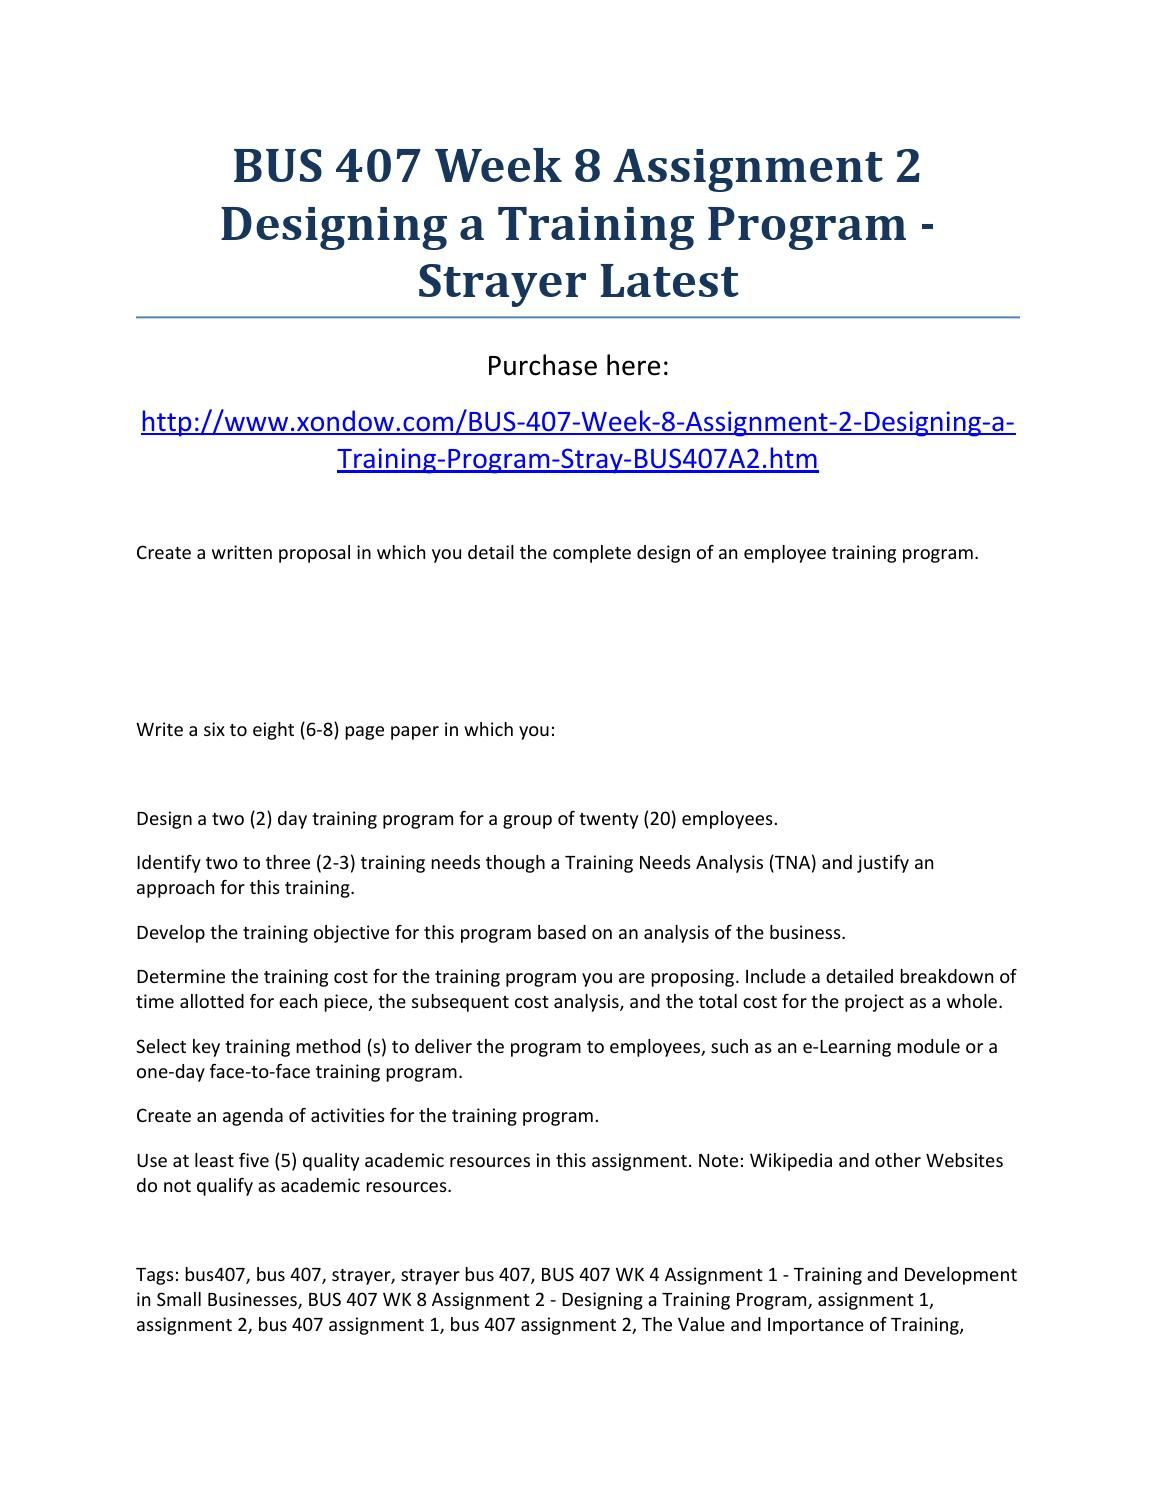 bus 407 training and development Bus 407 week 8 assignment 2 designing a training program (2 papers) analyze the various approaches to performing a training needs analysis.